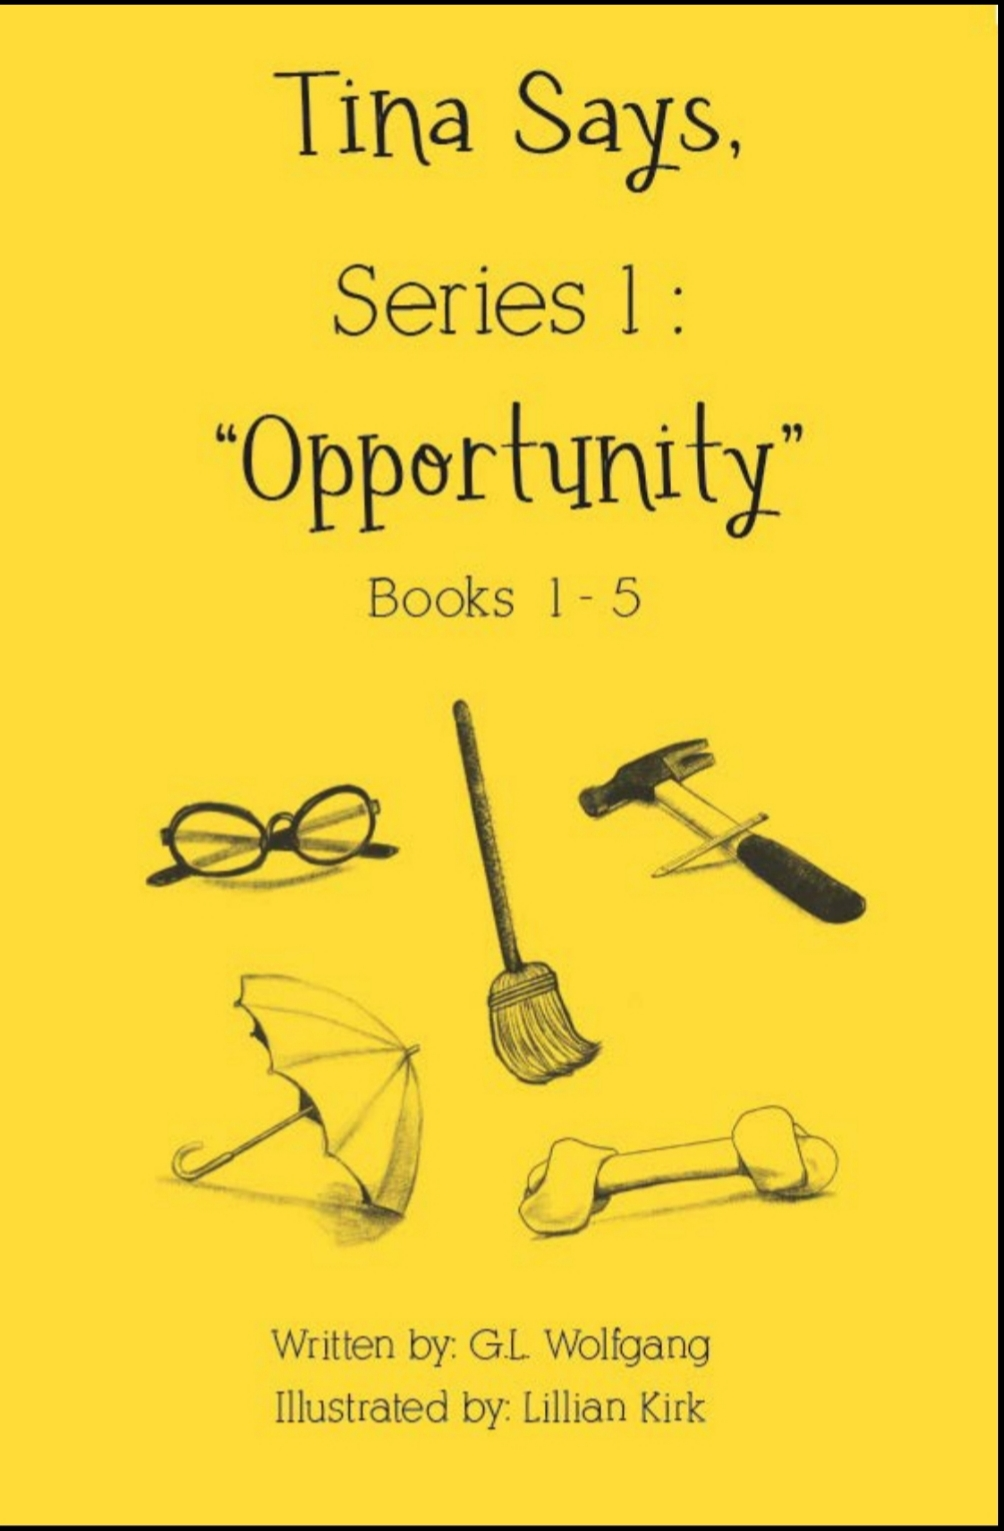 Kid Lit Book Review – Tina Says Opportunity by GL Wolfgang